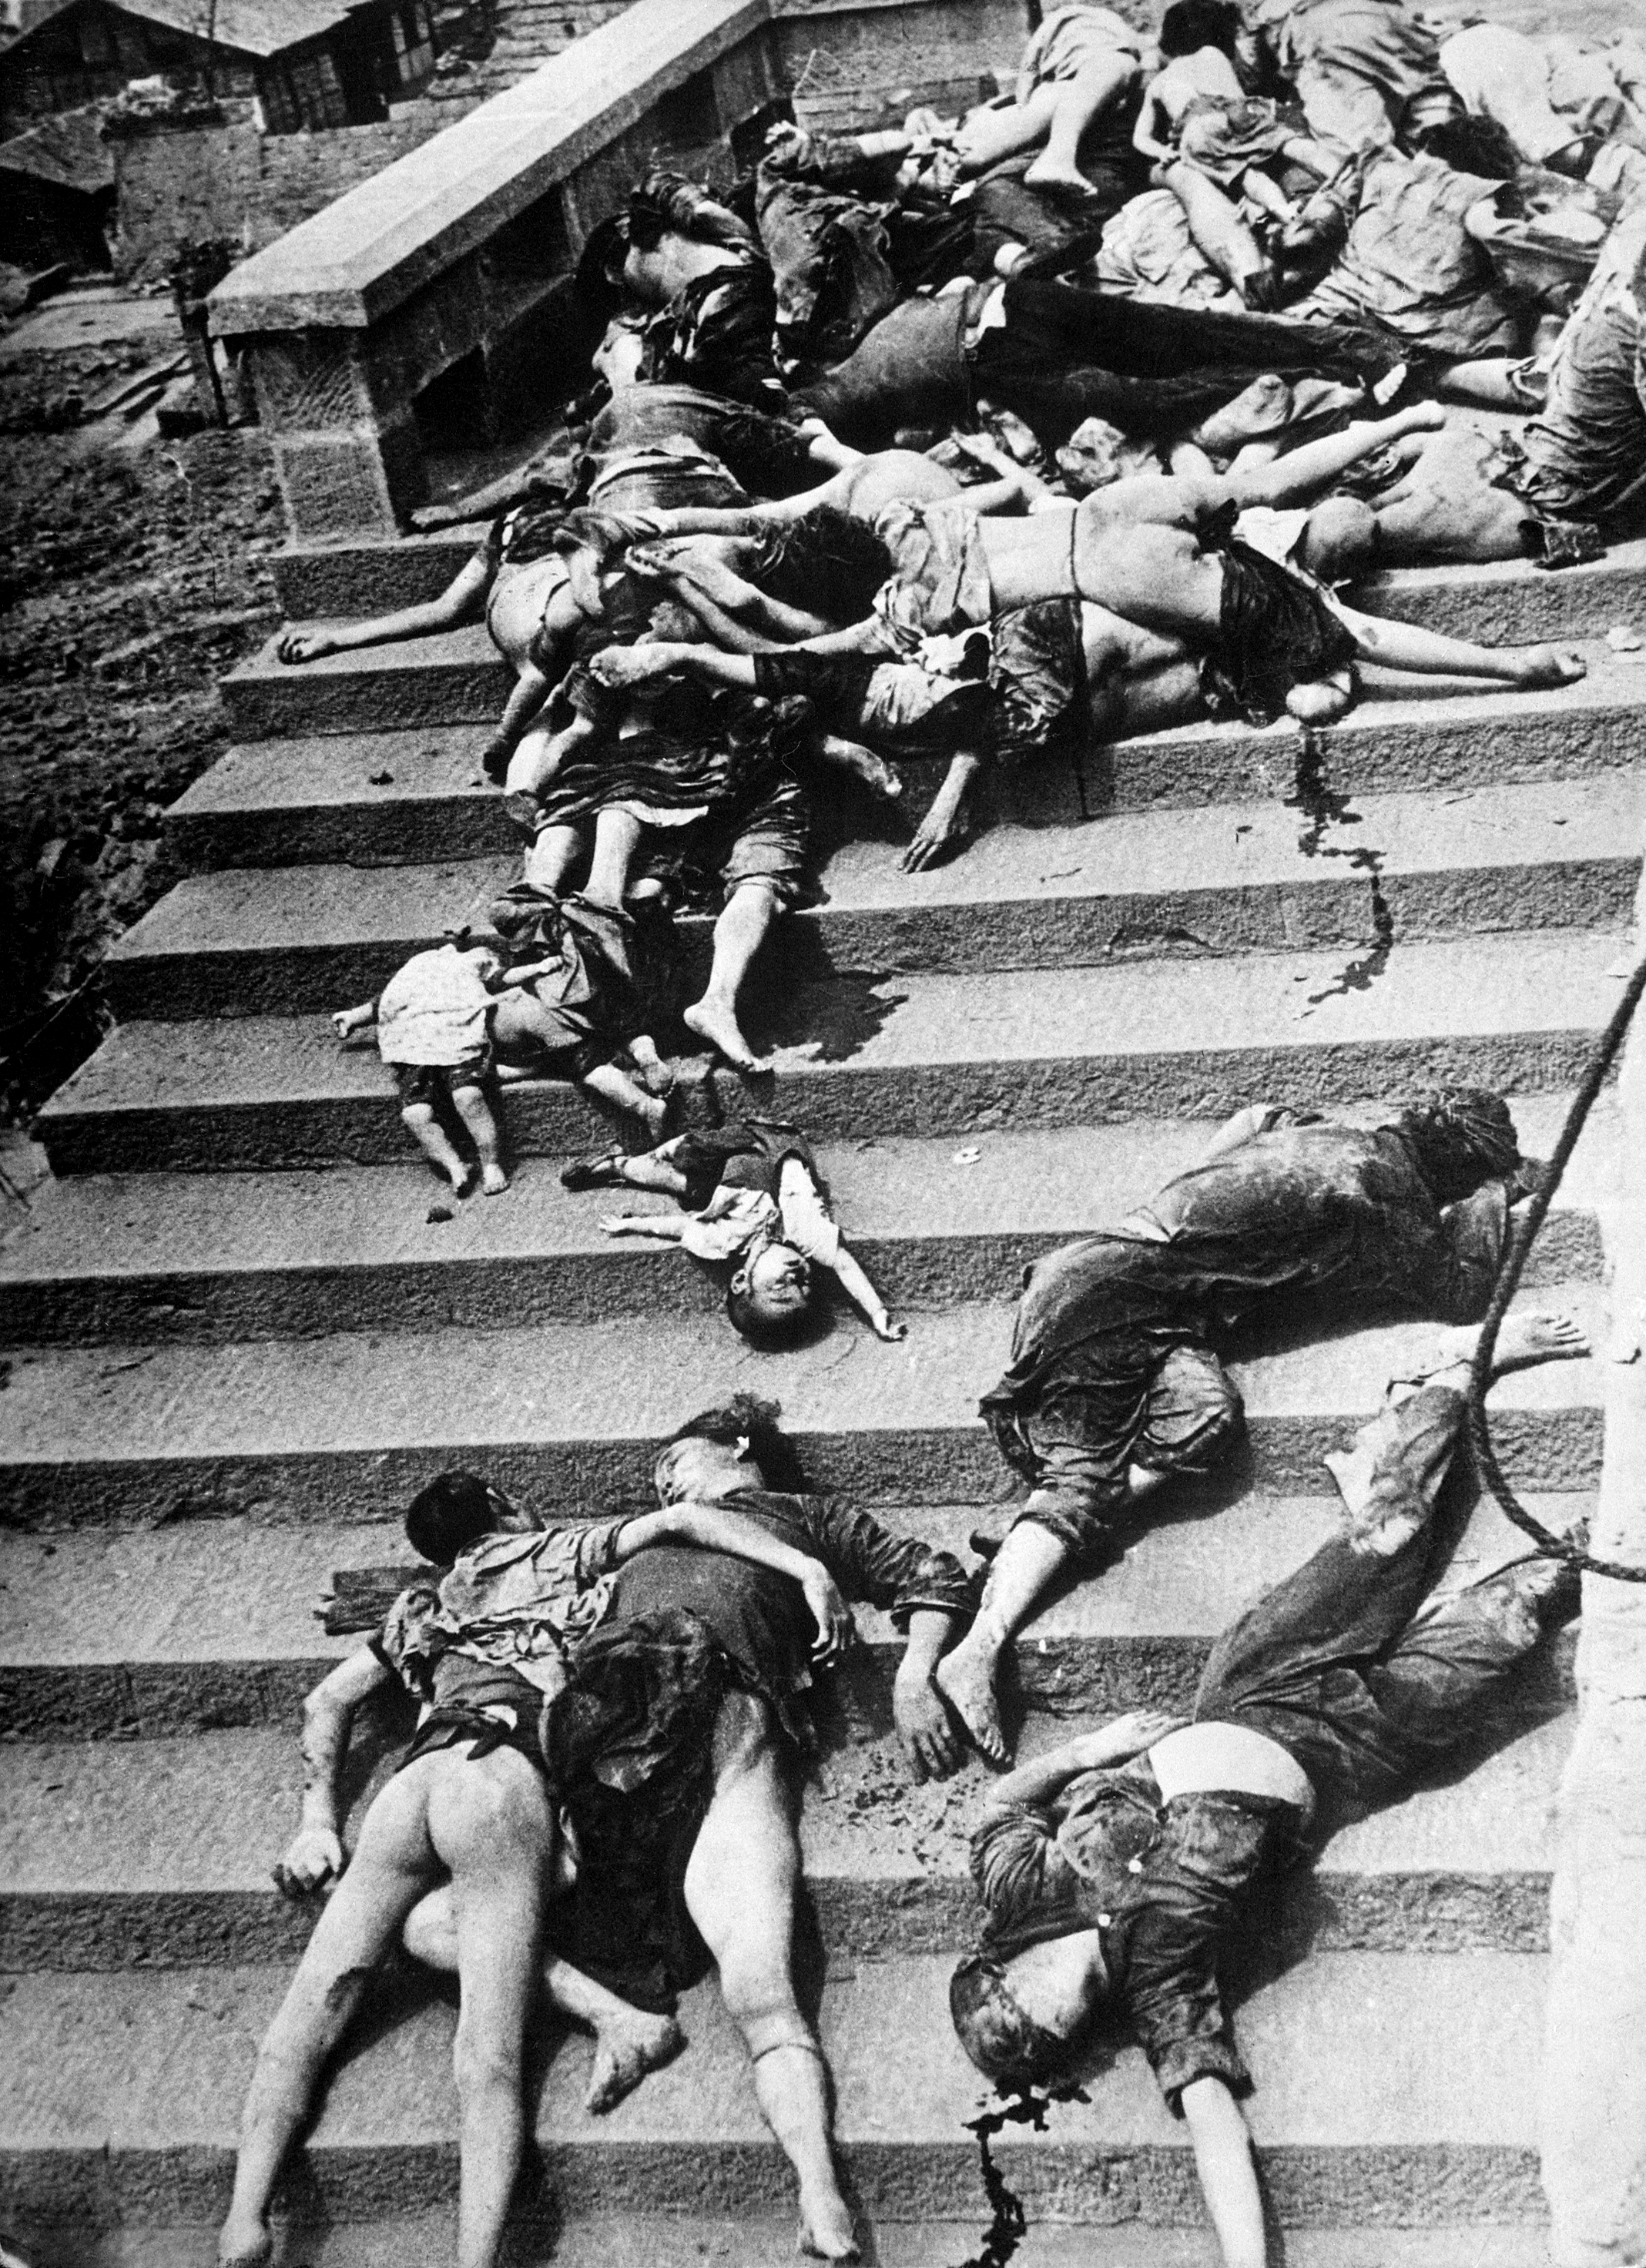 File:Casualties of a mass panic - Chungking, China.jpg